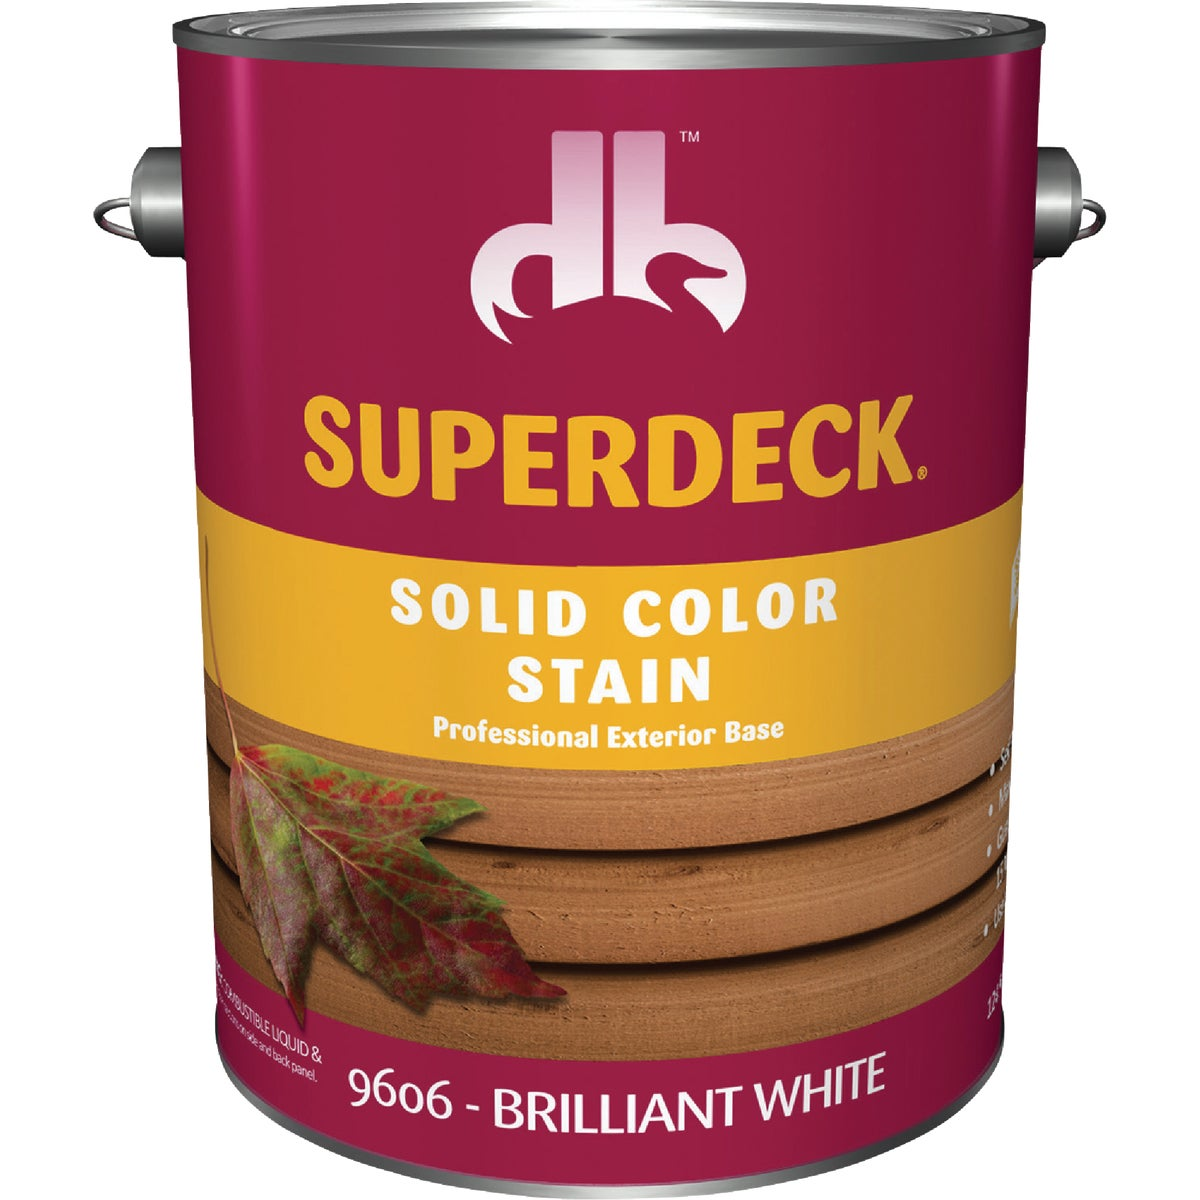 WHITE SOLID DECK STAIN - DB9606-4 by Duckback Prod